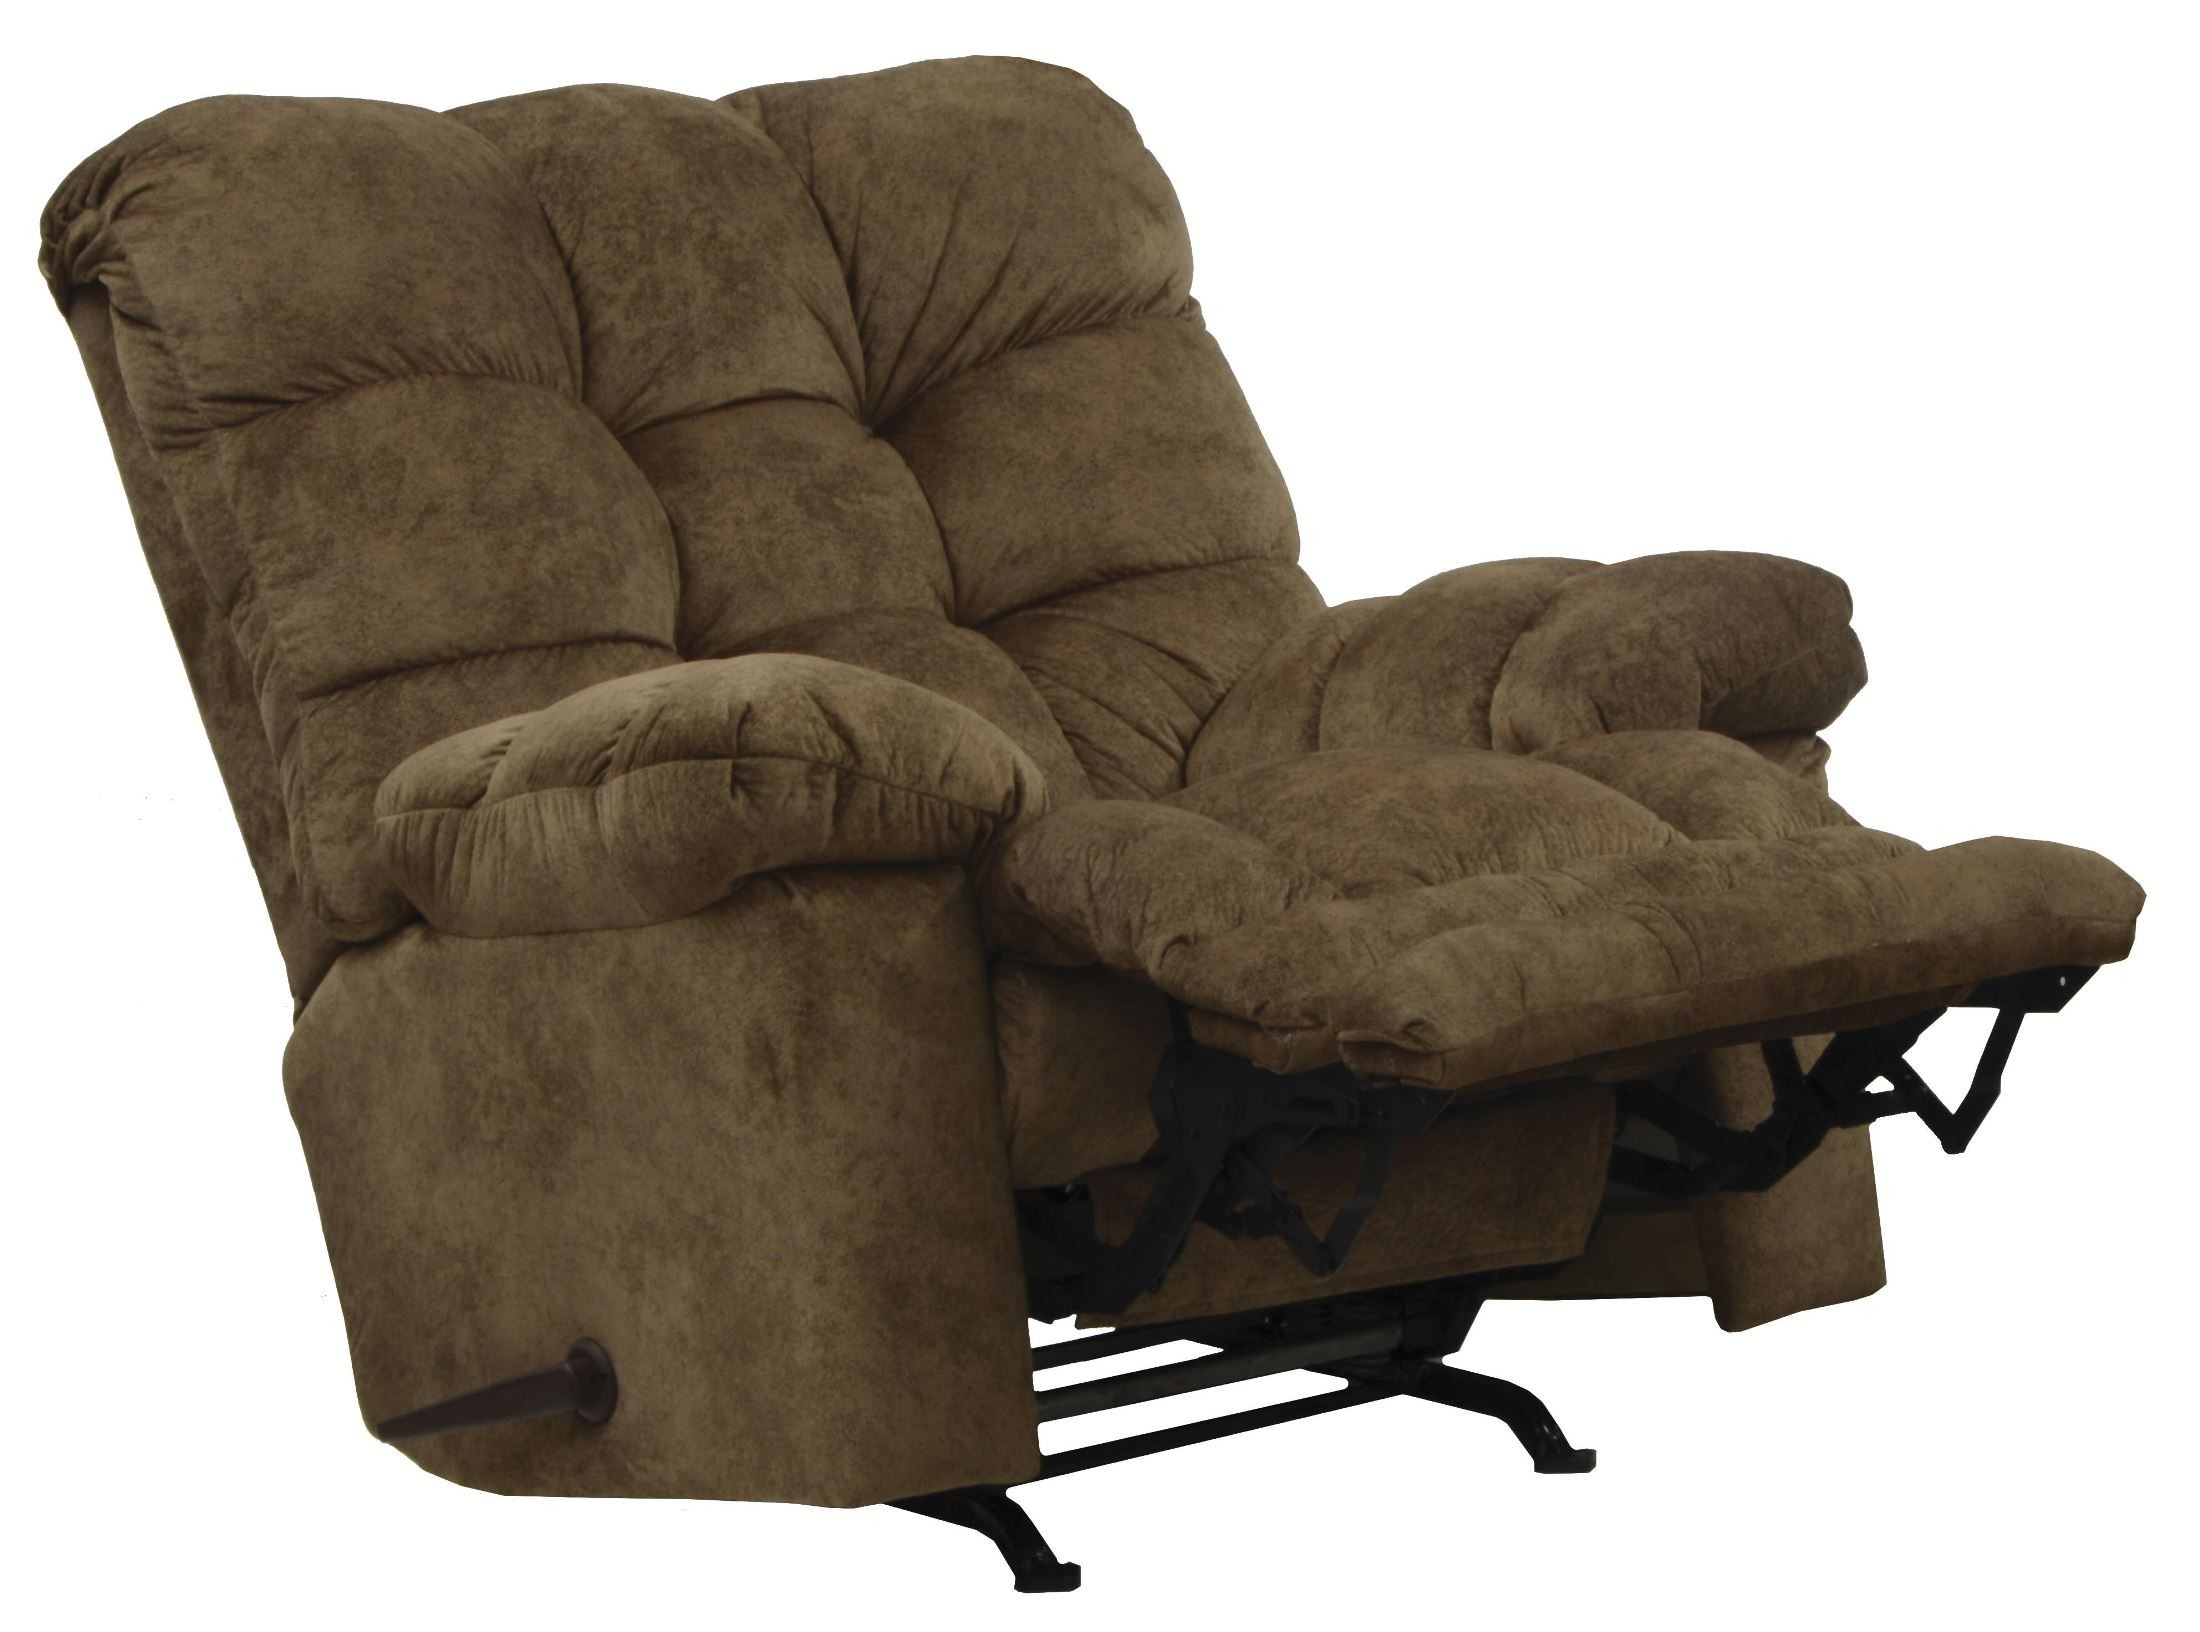 Bronson mocha recliner from catnapper 46902231249 for Catnapper cloud nine chaise recliner